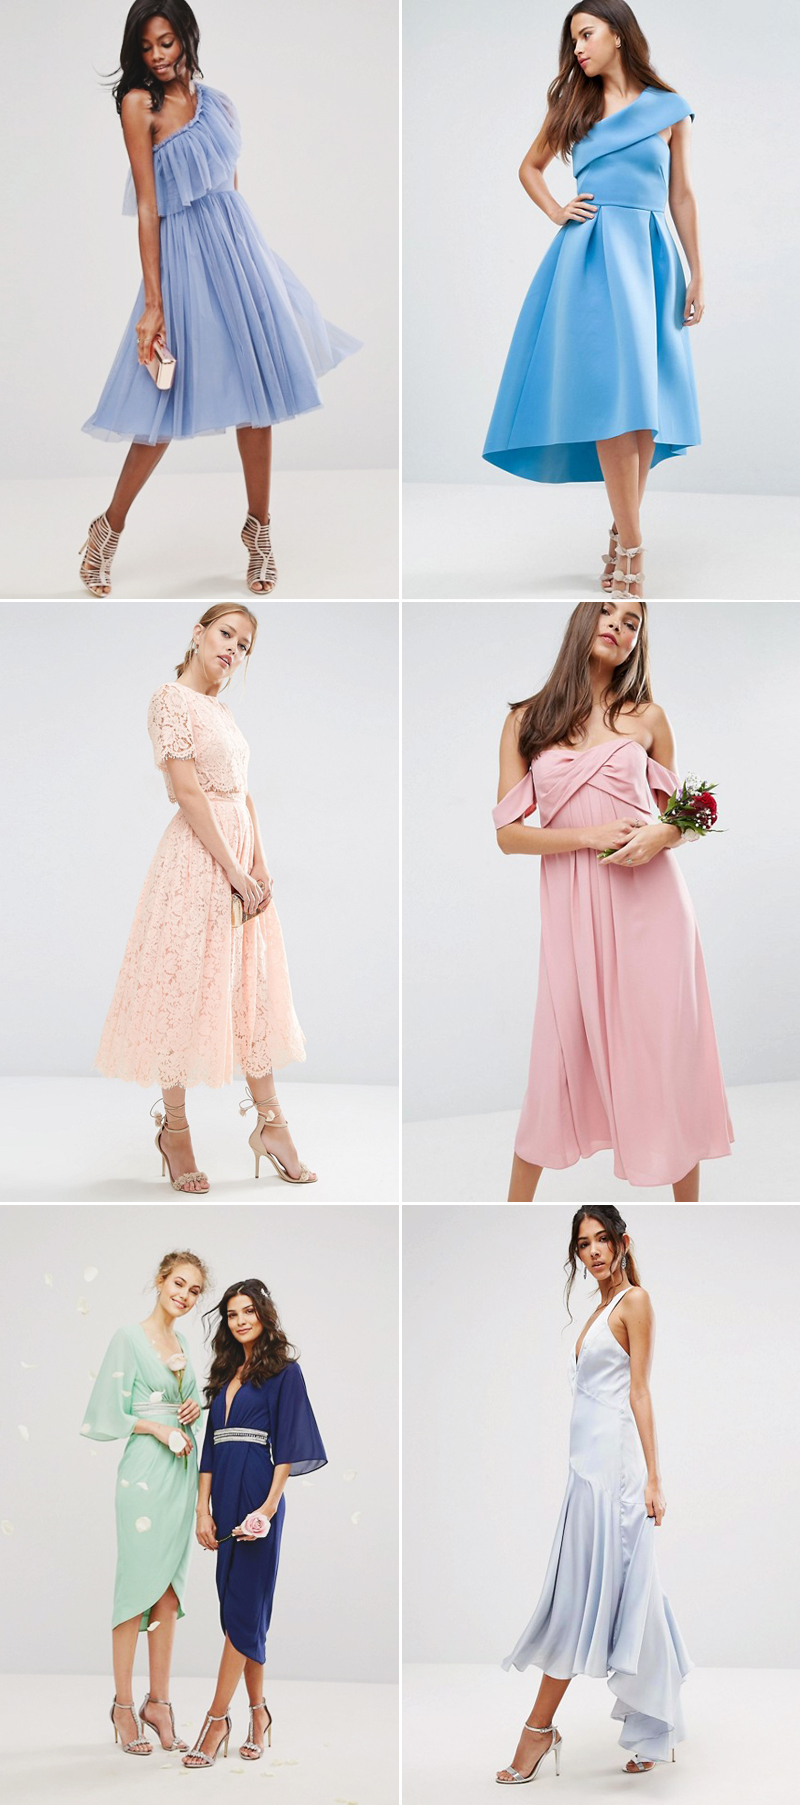 The 6 bridesmaid dress trends you need to know for this spring contemporary tea length midi dresses ombrellifo Image collections